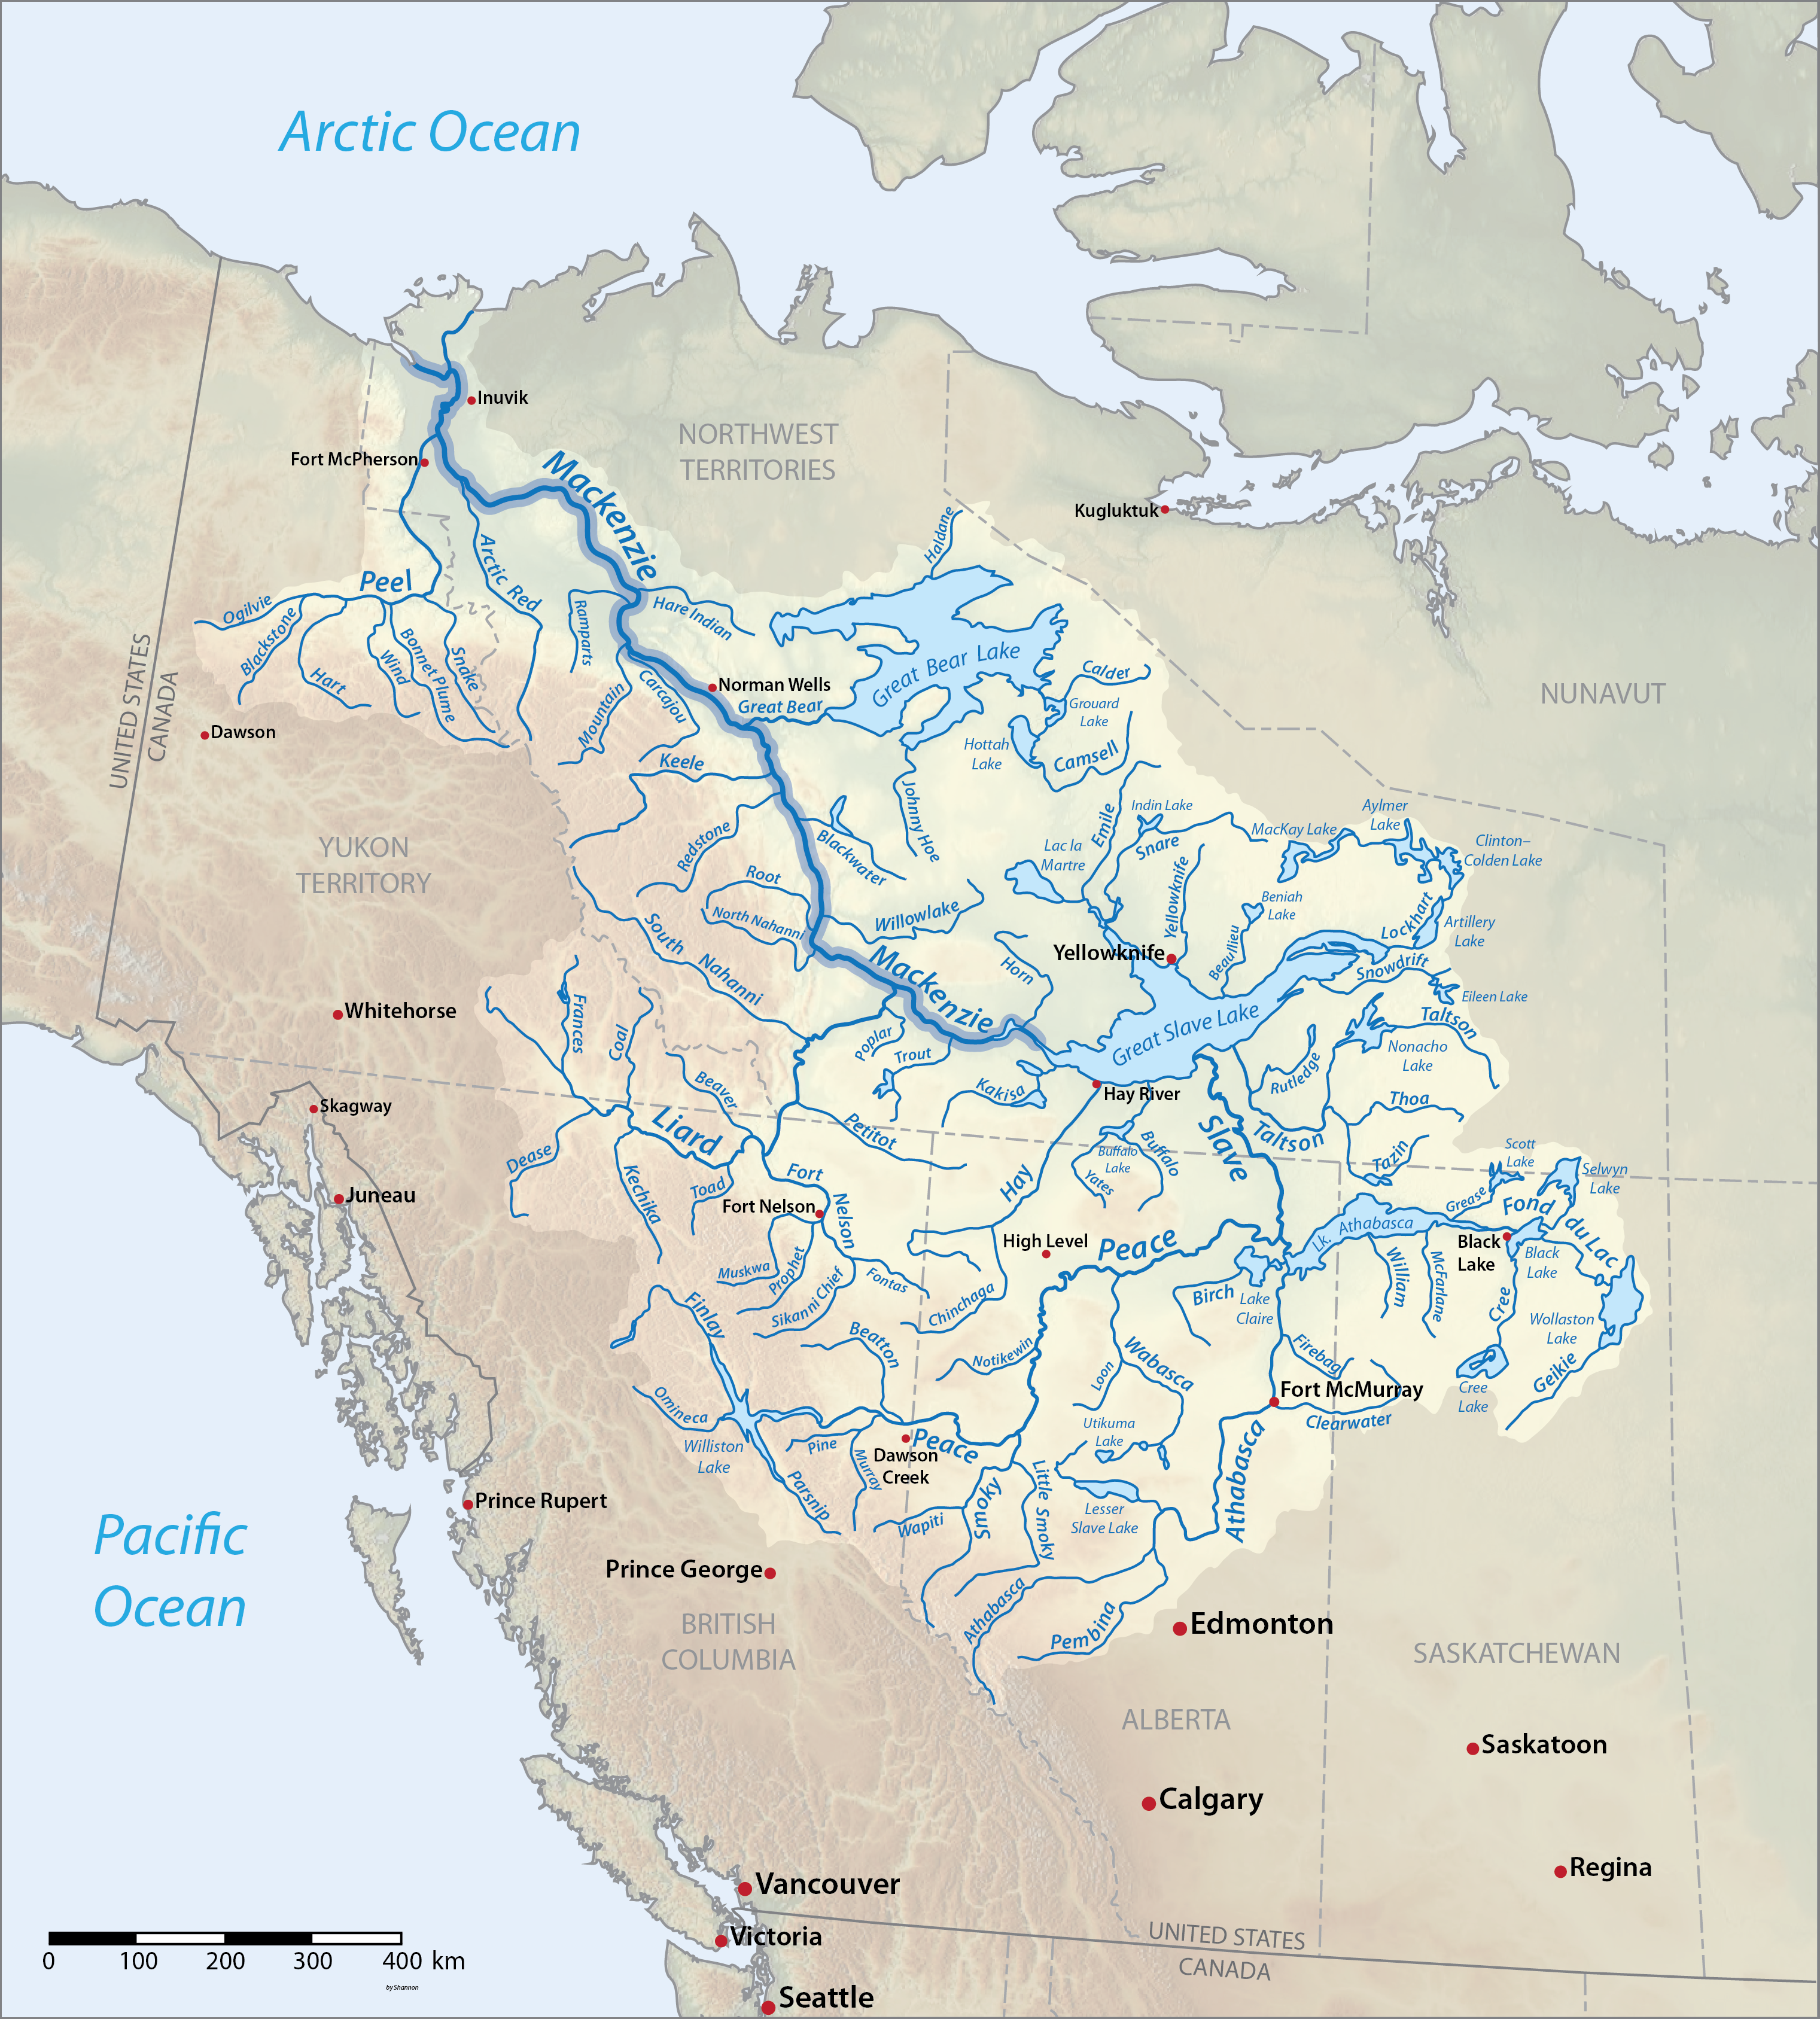 Map Of Mackenzie Watershed Including Tributaries And